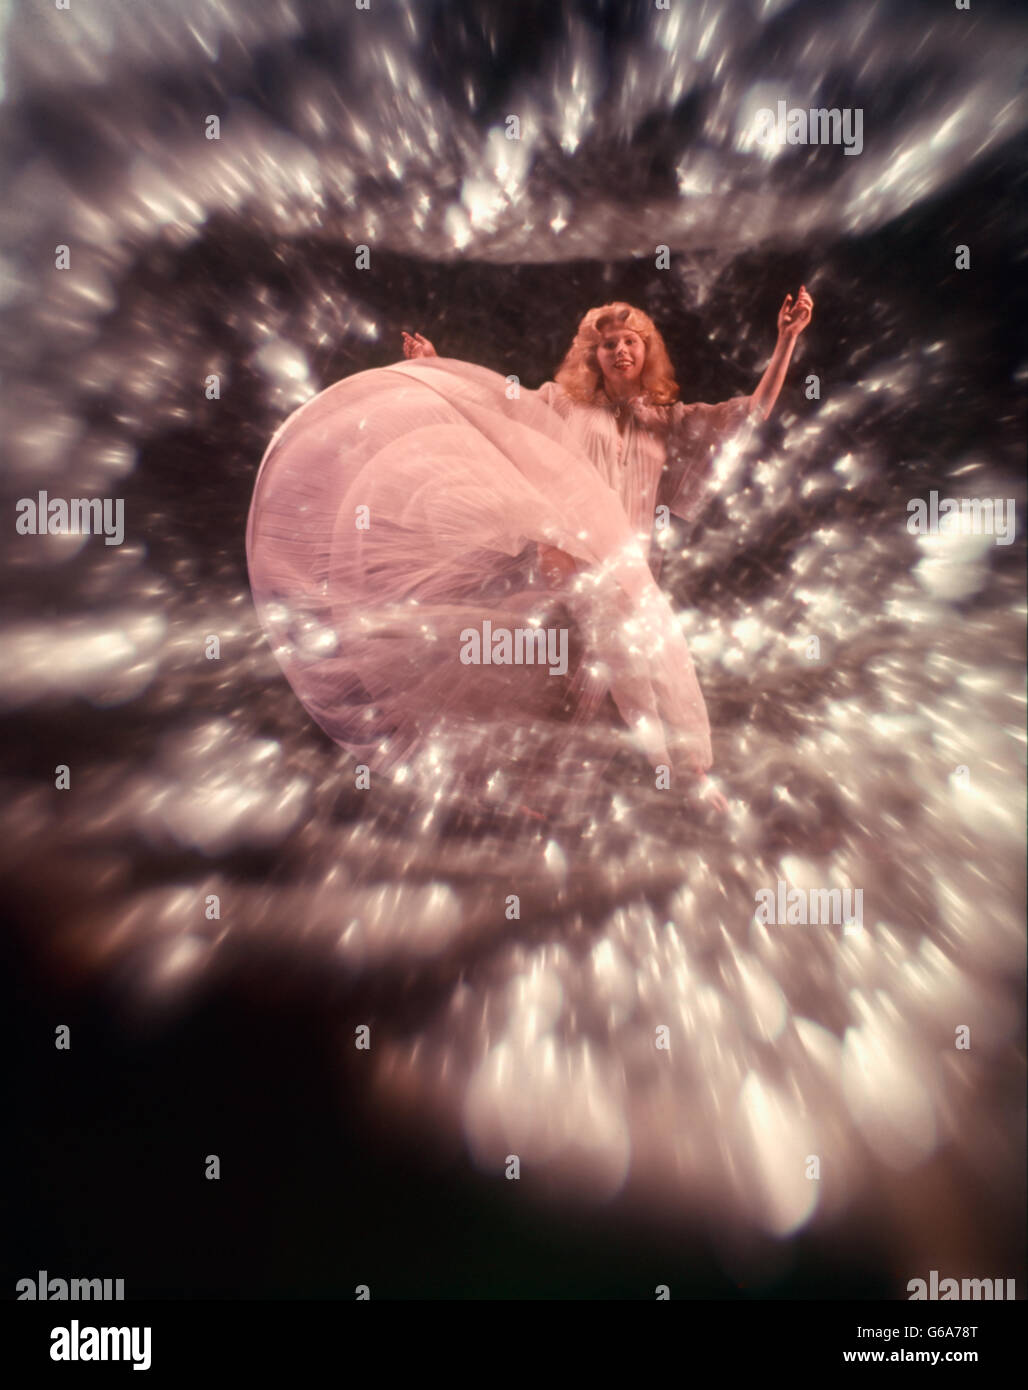 1960s BLONDE WOMAN SHEER PINK WHITE GOWN DANCING TURNING SWIRLING BLUR STAR BACKGROUND BUBBLES MUSIC DANCE - Stock Image